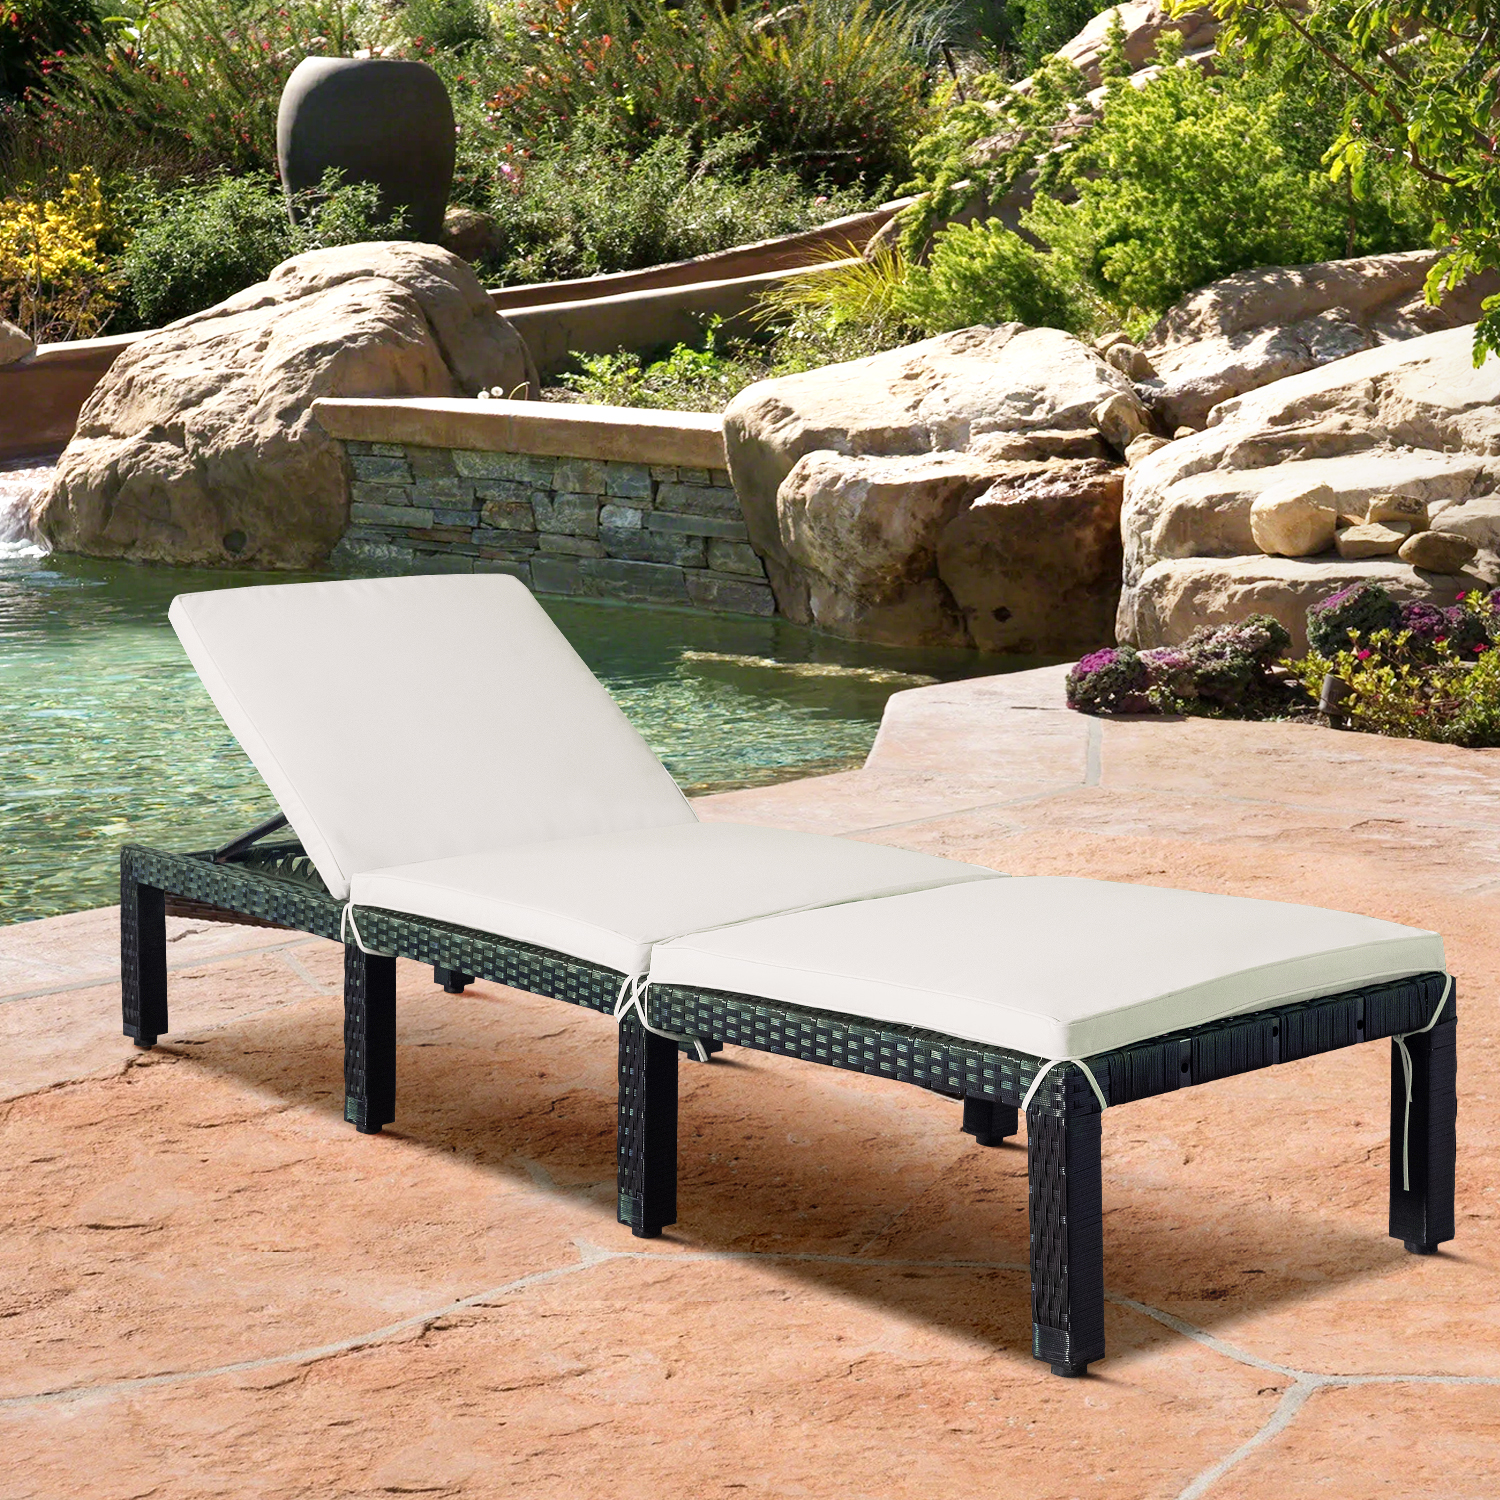 Clearance! Chaise Lounges for Patio, Outdoor Chaise Lounge ...